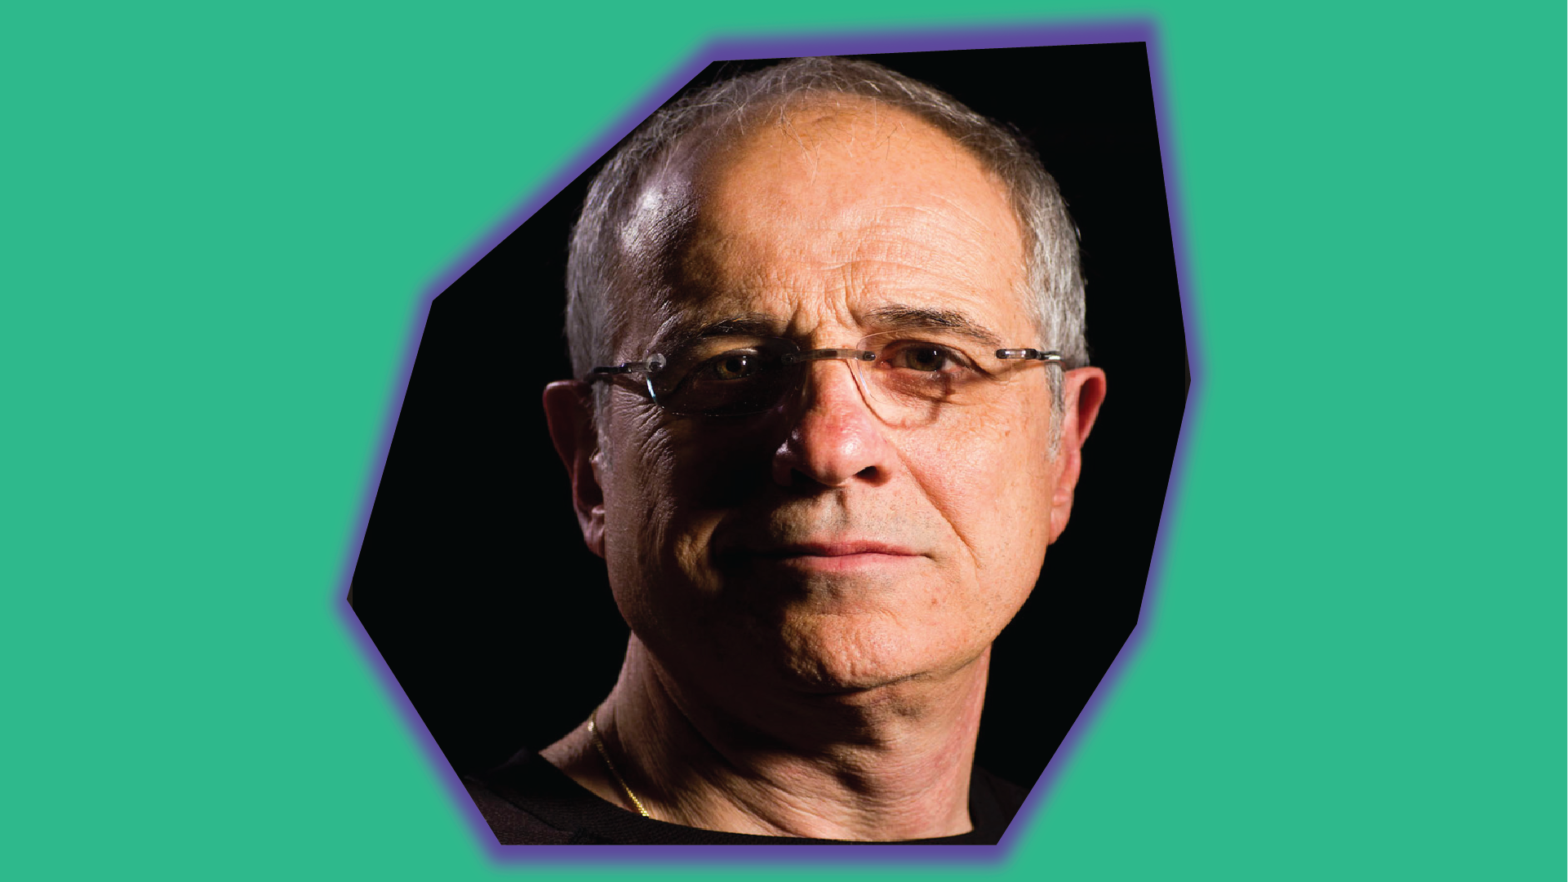 Headshot of Canadian producer Bob Ezrin embedded within a rhombus asymmetrical glowing shape on top of a green background